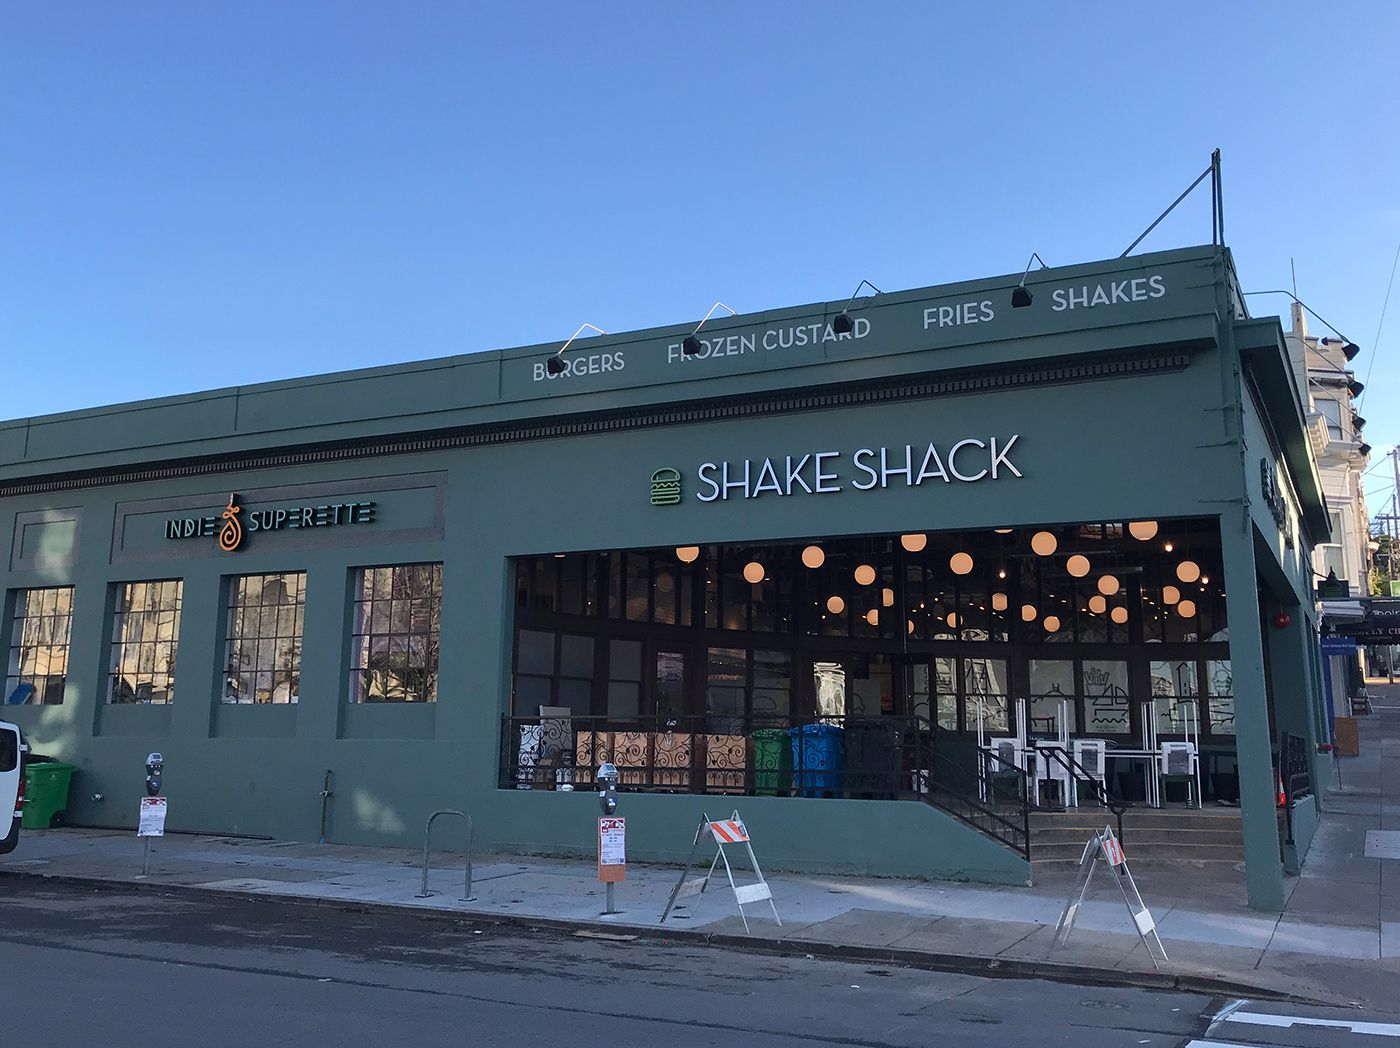 Shake Shack Opening In Cow Hollow Seen As An Insult and a Threat to Local Restaurants